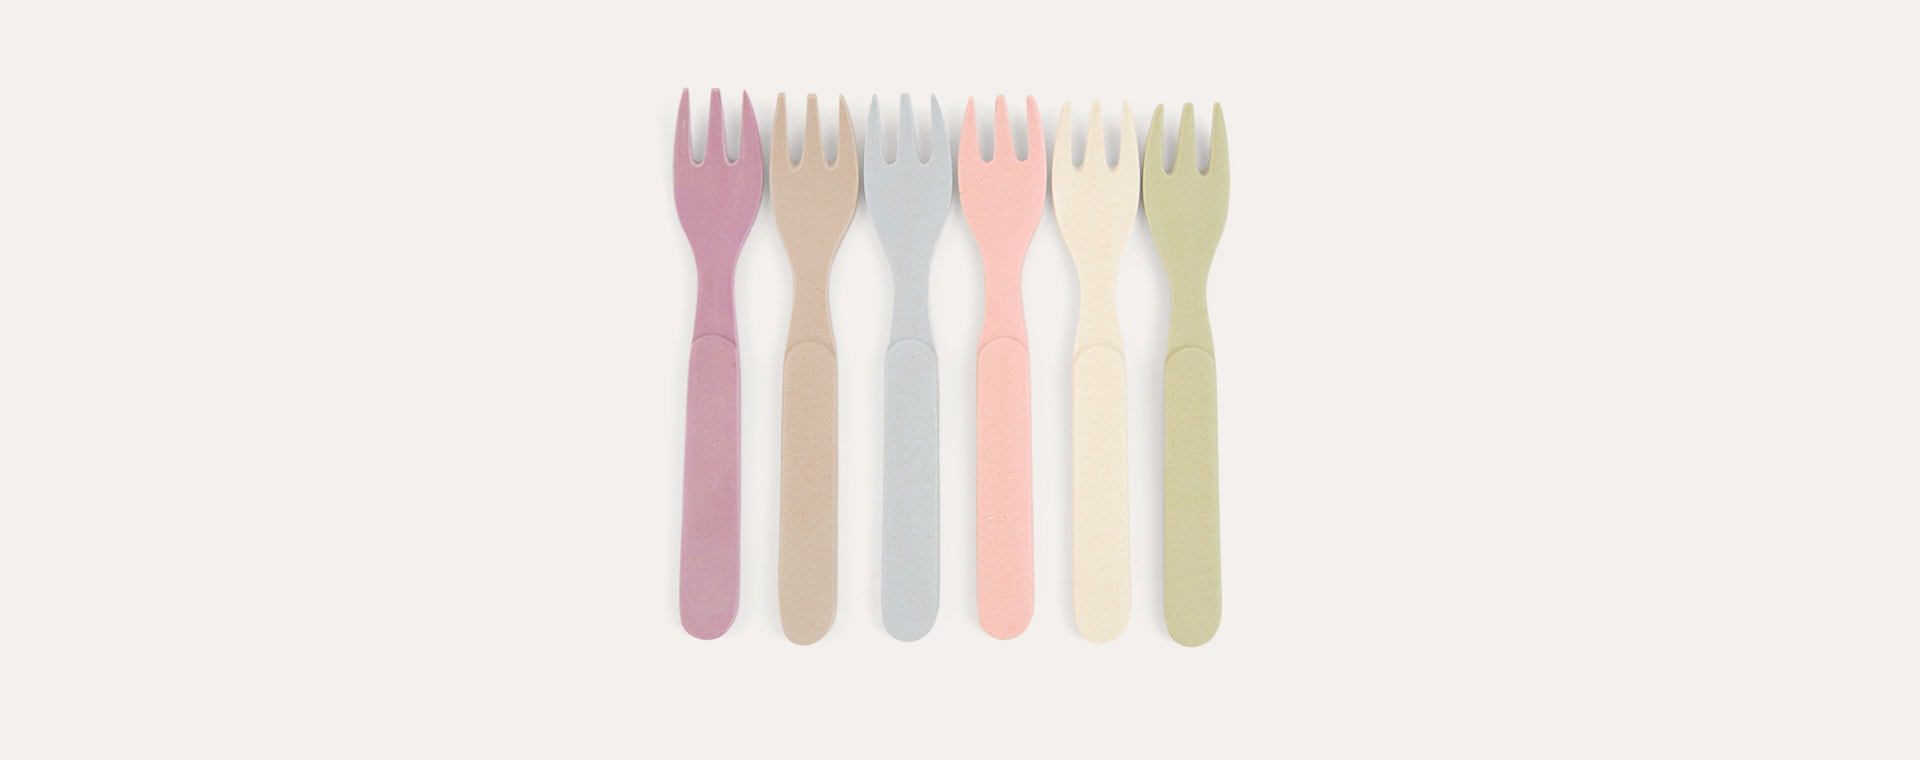 Dawn Zuperzozial Forks Set Of 6